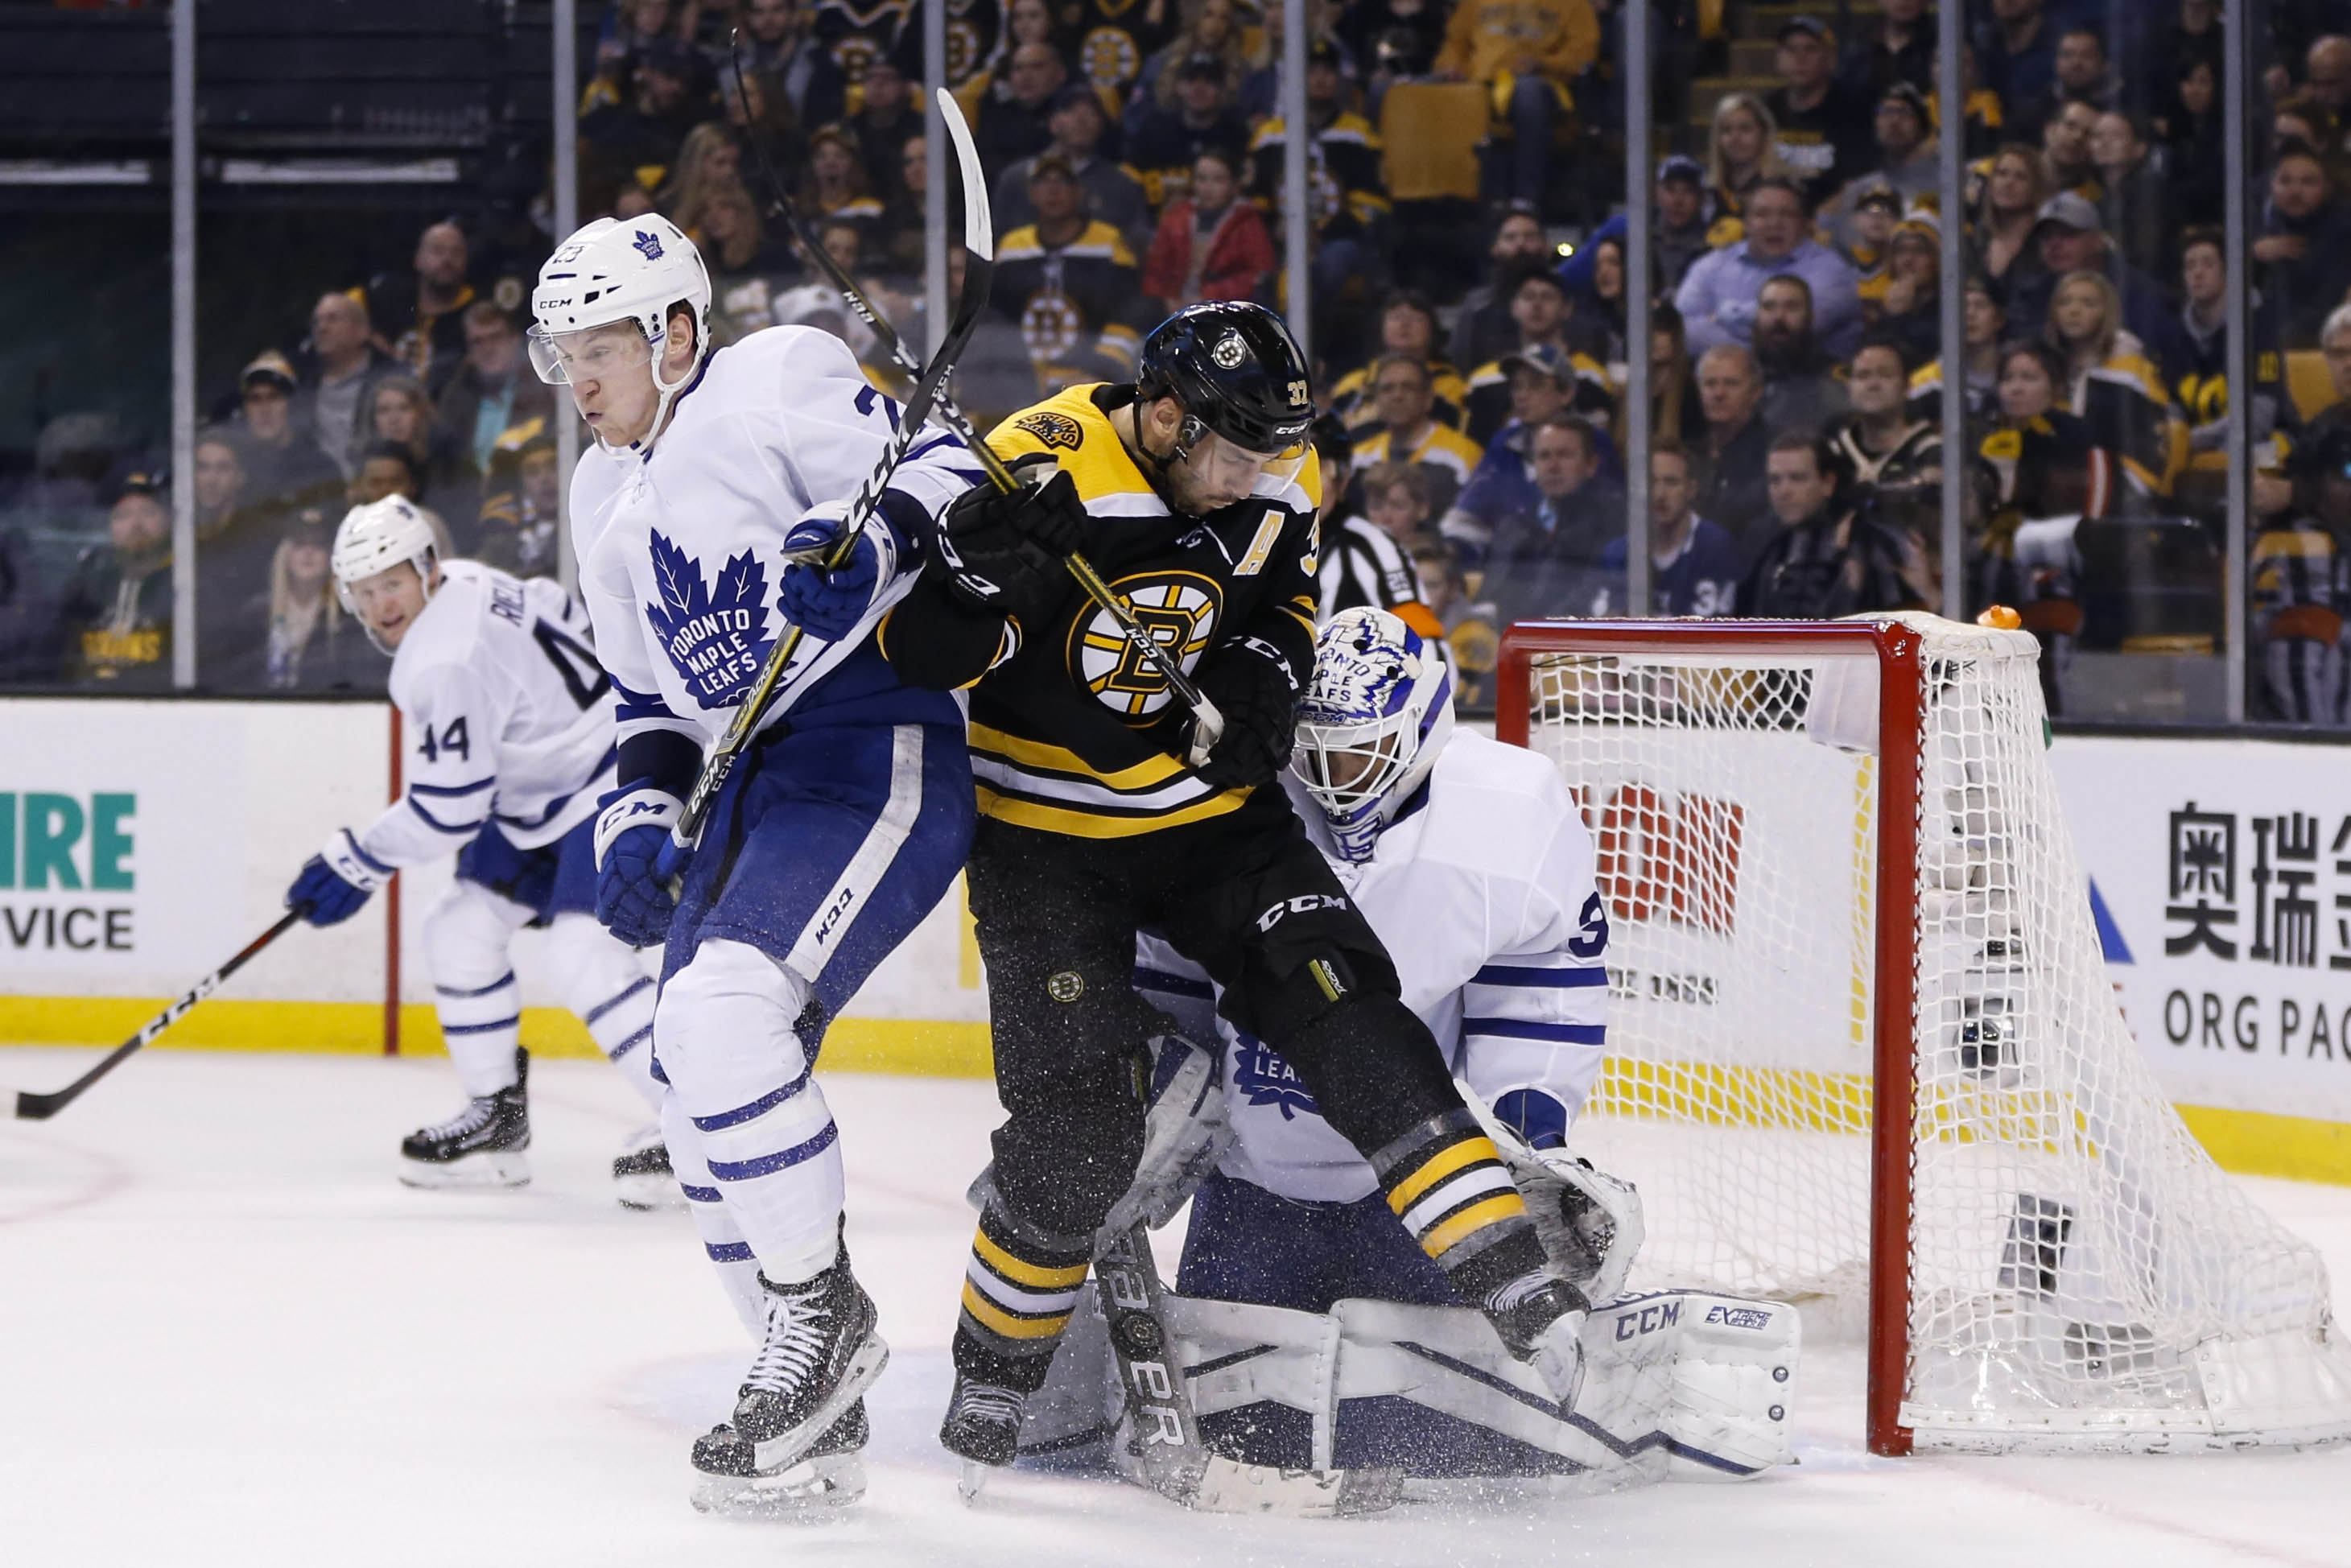 f910ae253aa Bruins favored over Maple Leafs on Game 7 NHL betting lines